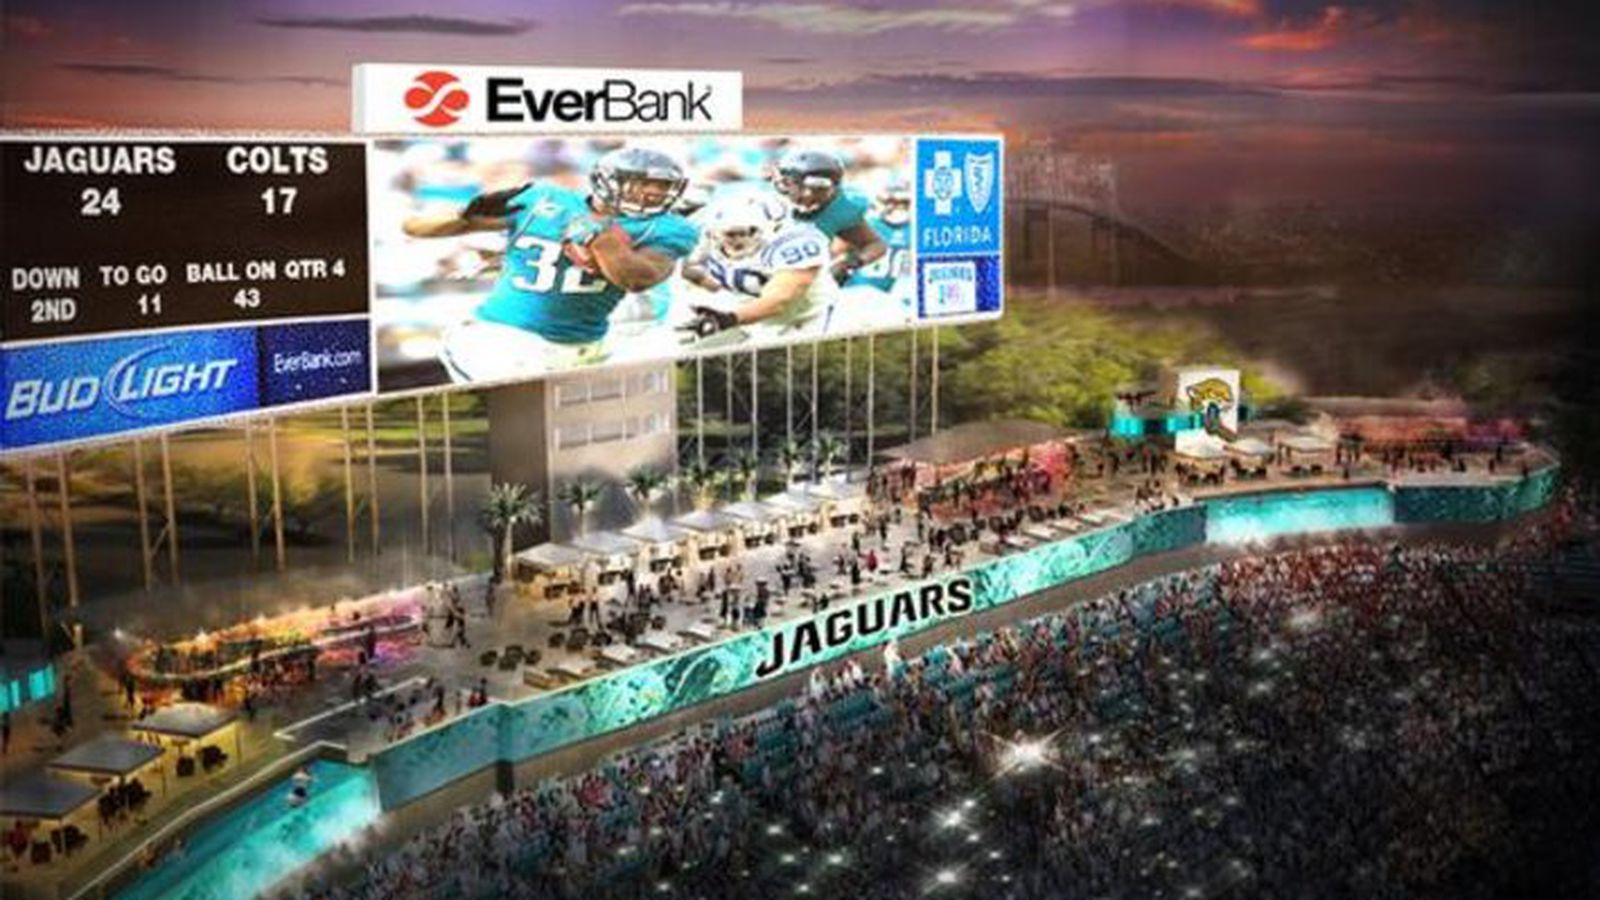 Jaguars Announce Wet Wild Improvements For Everbank Field